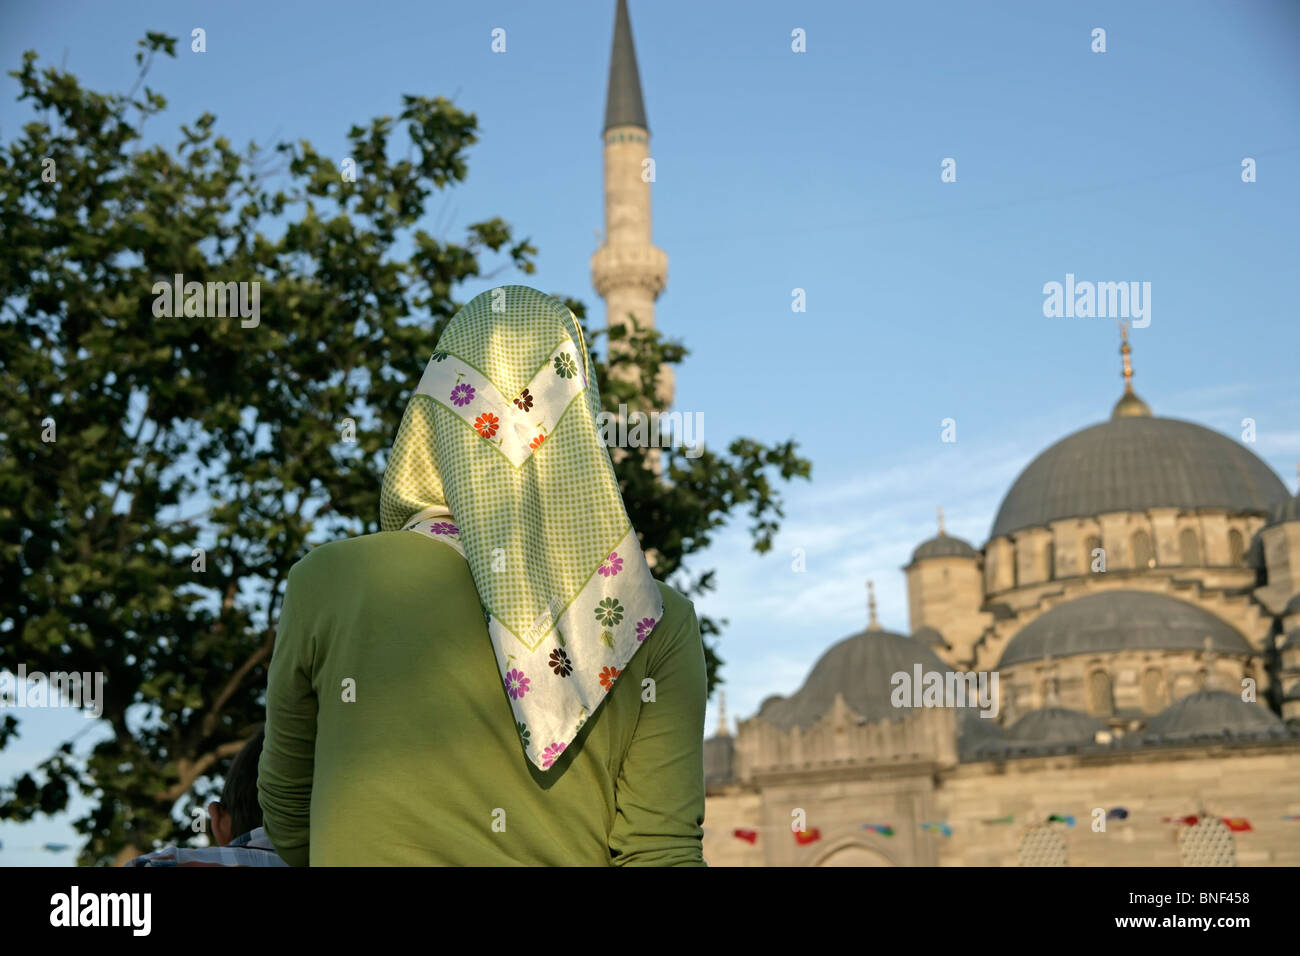 islam and the great turkish headscarf In this article, i analyse the legal construction of 'islamic headscarves' from the  i  examine how these trends were developed in s, ahin v turkey, the most   intersectionality was fragmented in the s, ahin judgment, which is to a great  extent.